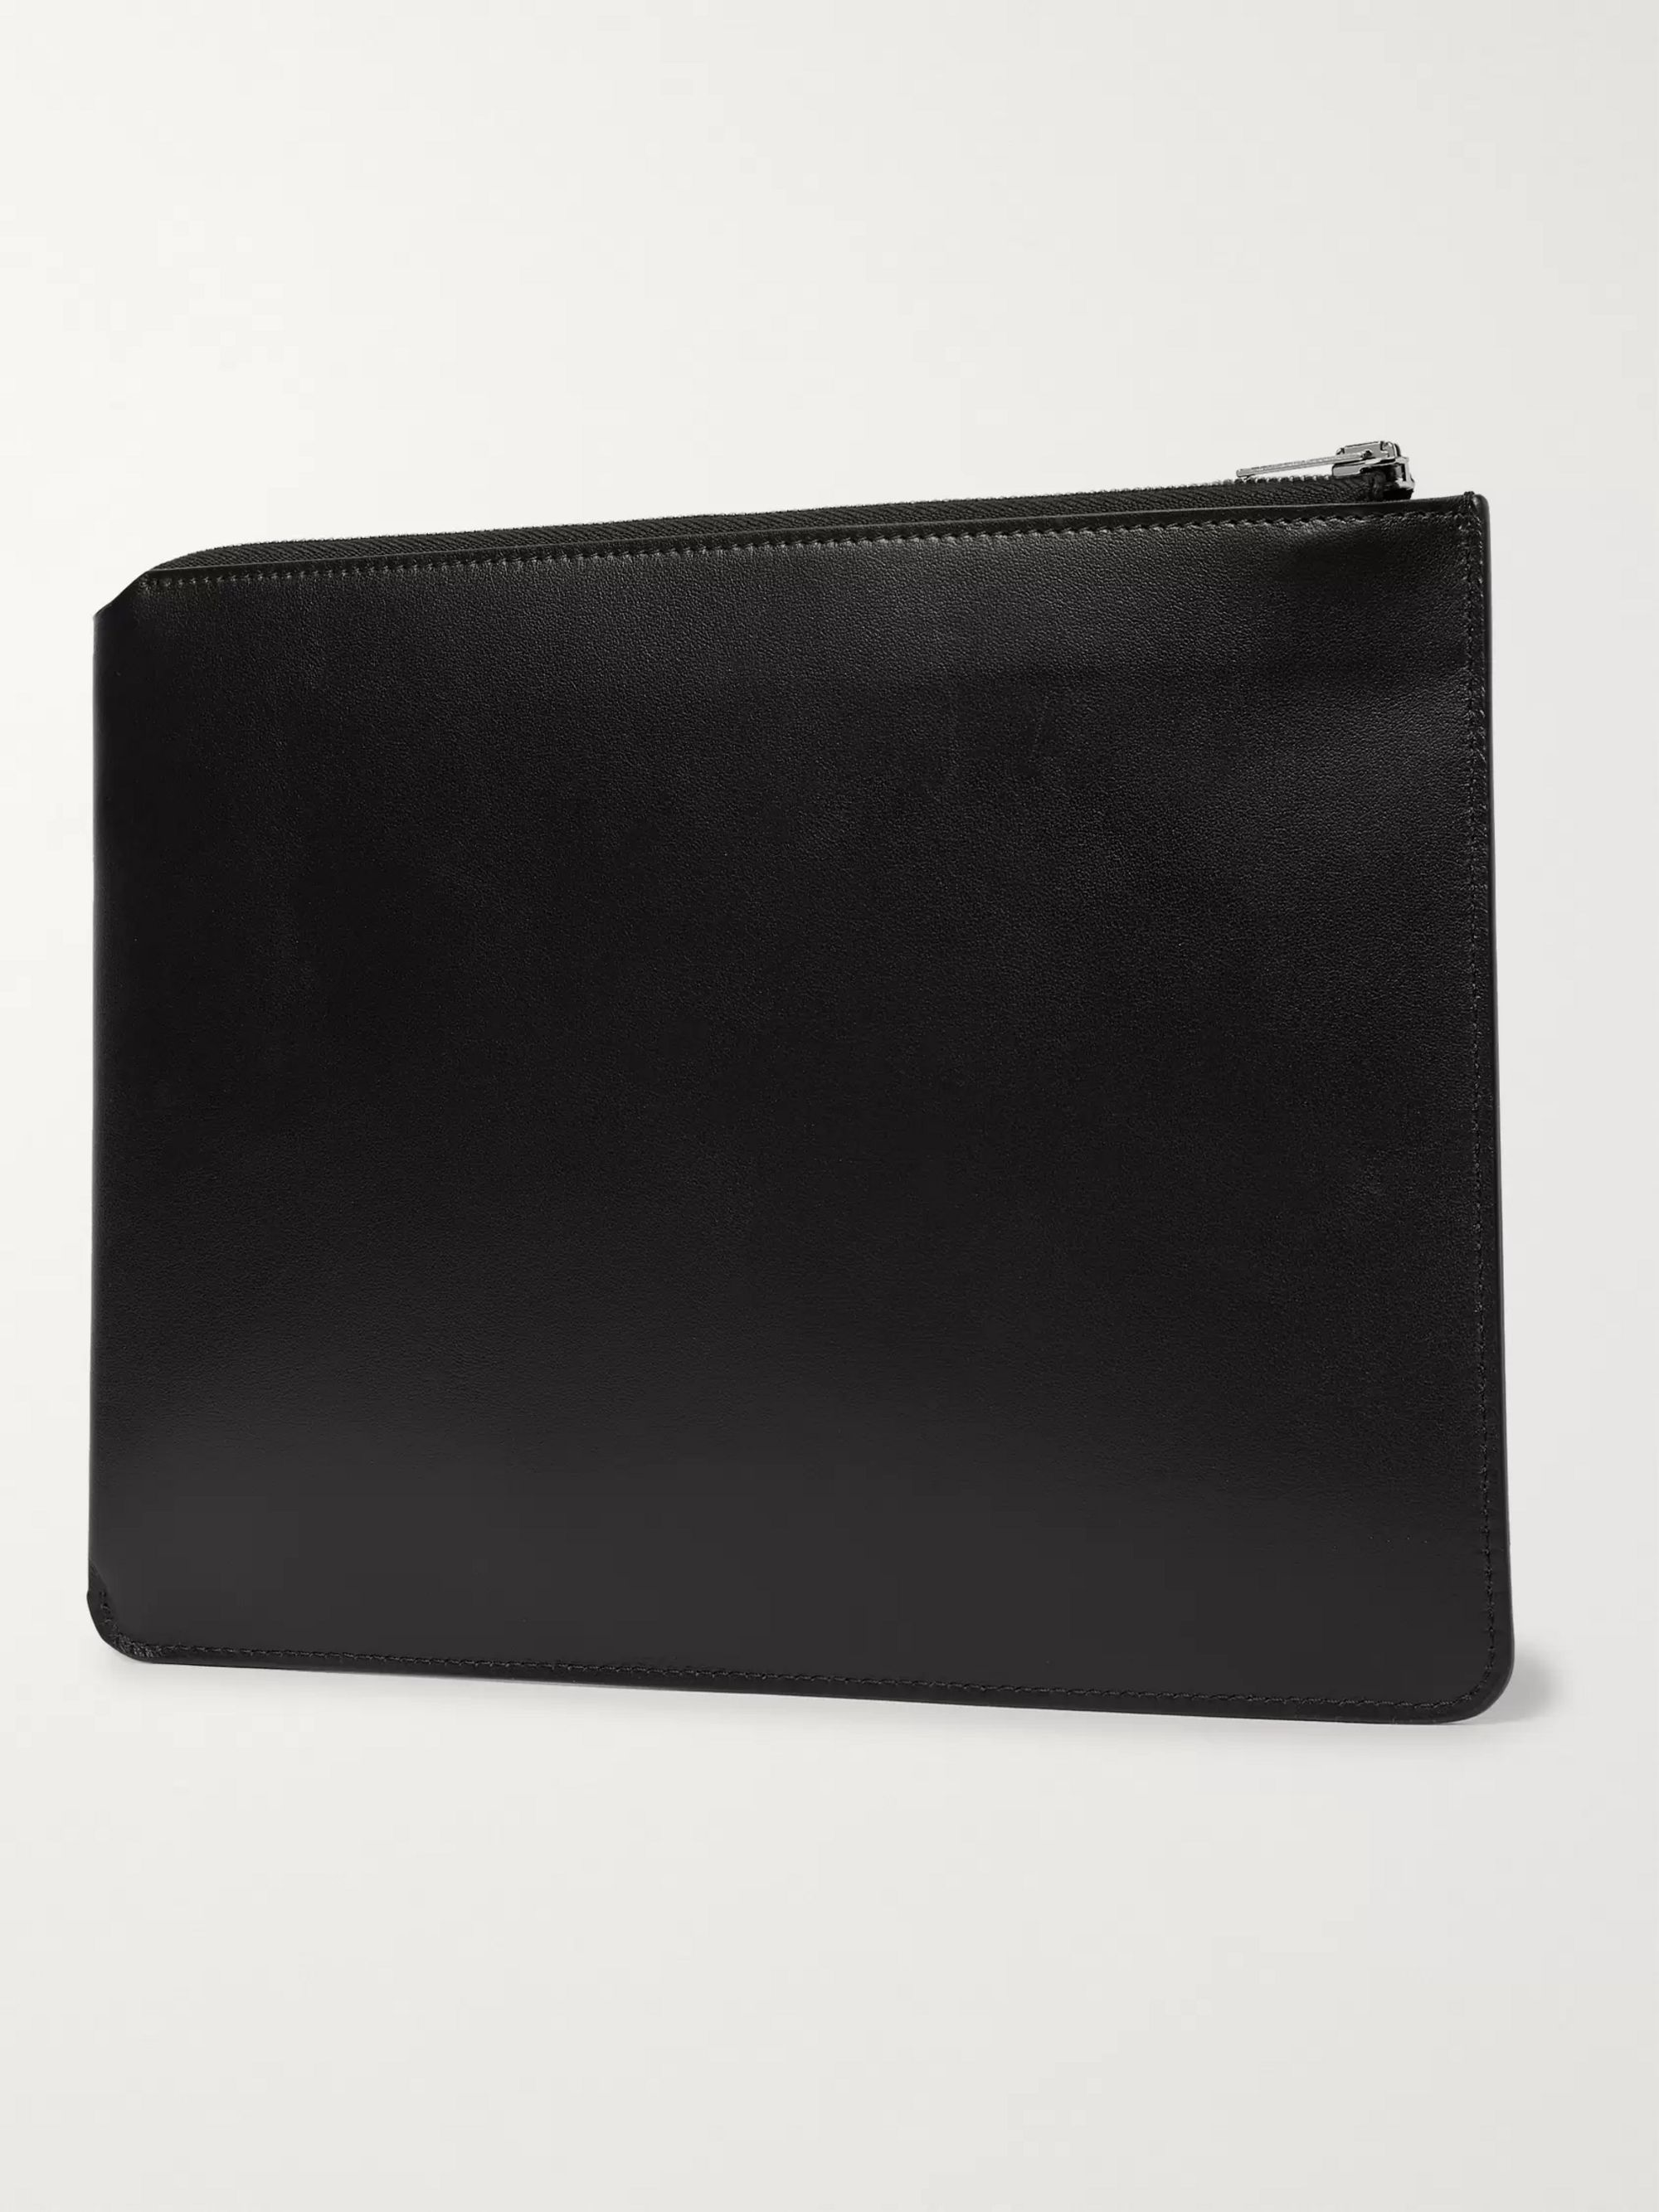 Acne Studios Leather Pouch